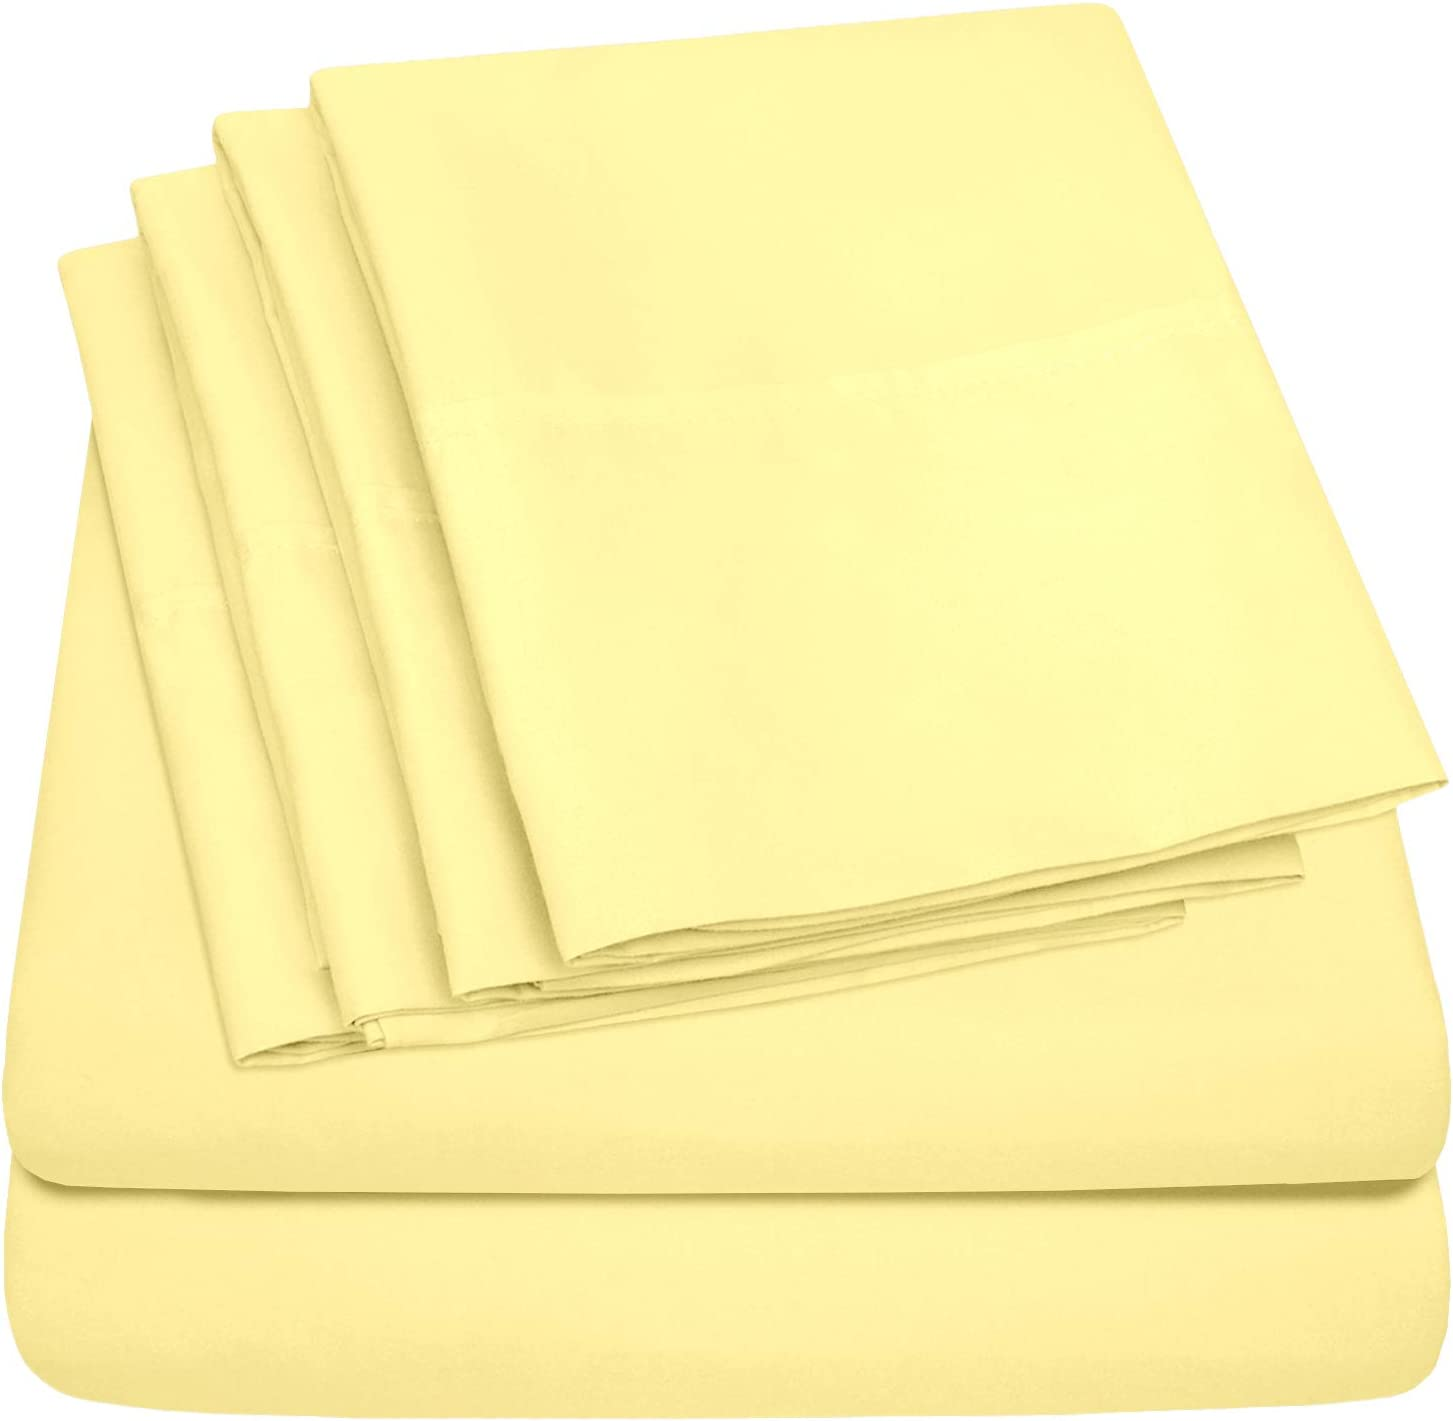 Sweet Home Collection 6 Piece Bed Sheets 1500 Thread Count Fine Microfiber Deep Pocket Set - EXTRA PILLOW CASES, VALUE, Twin XL, Pale Yellow, 4